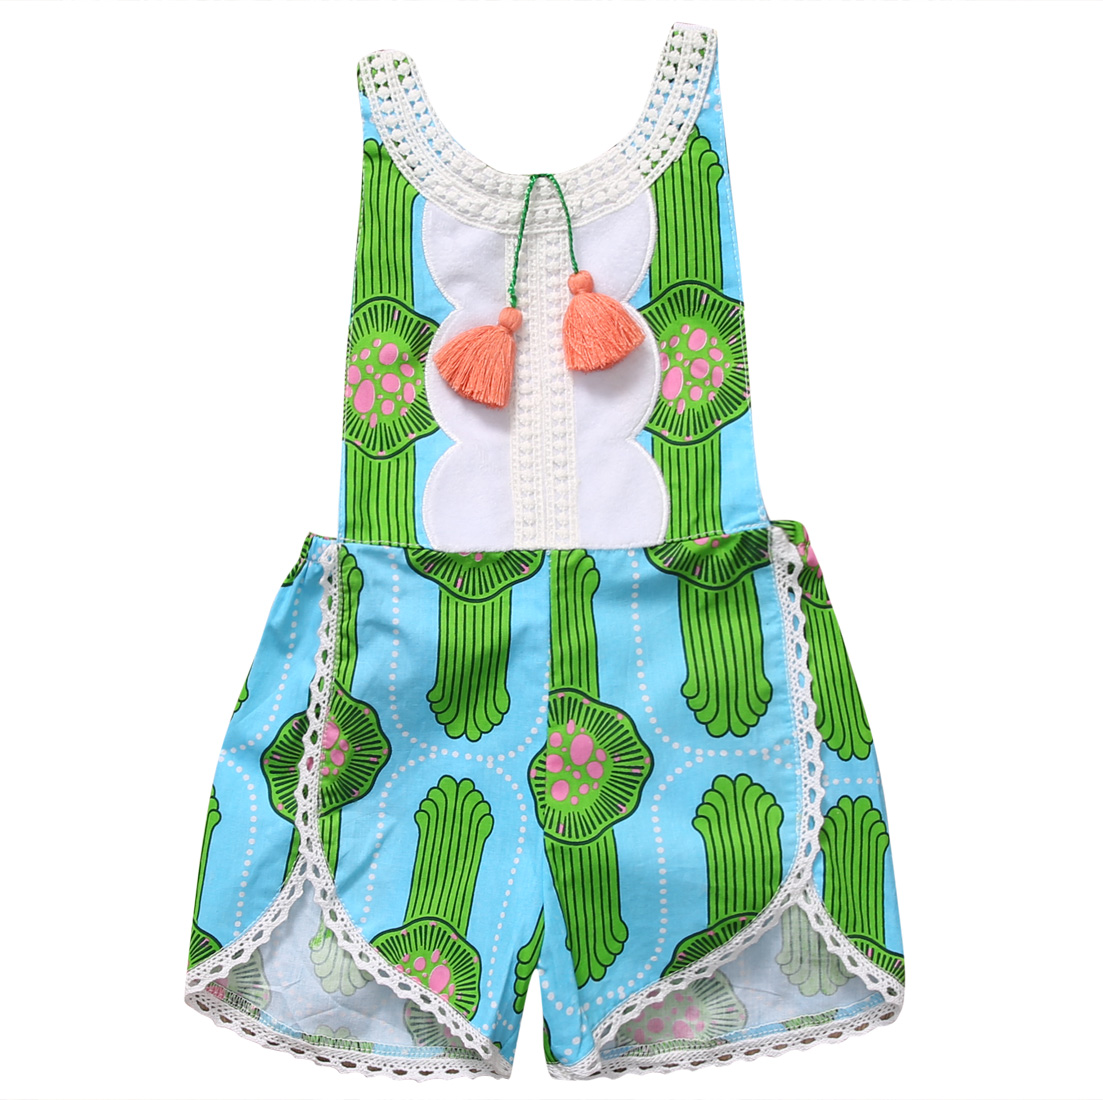 2017 Cute Cactus Summer Toddler Baby Girl Tassels Jumper Romper Jumpsuit Sunsuit Clothes